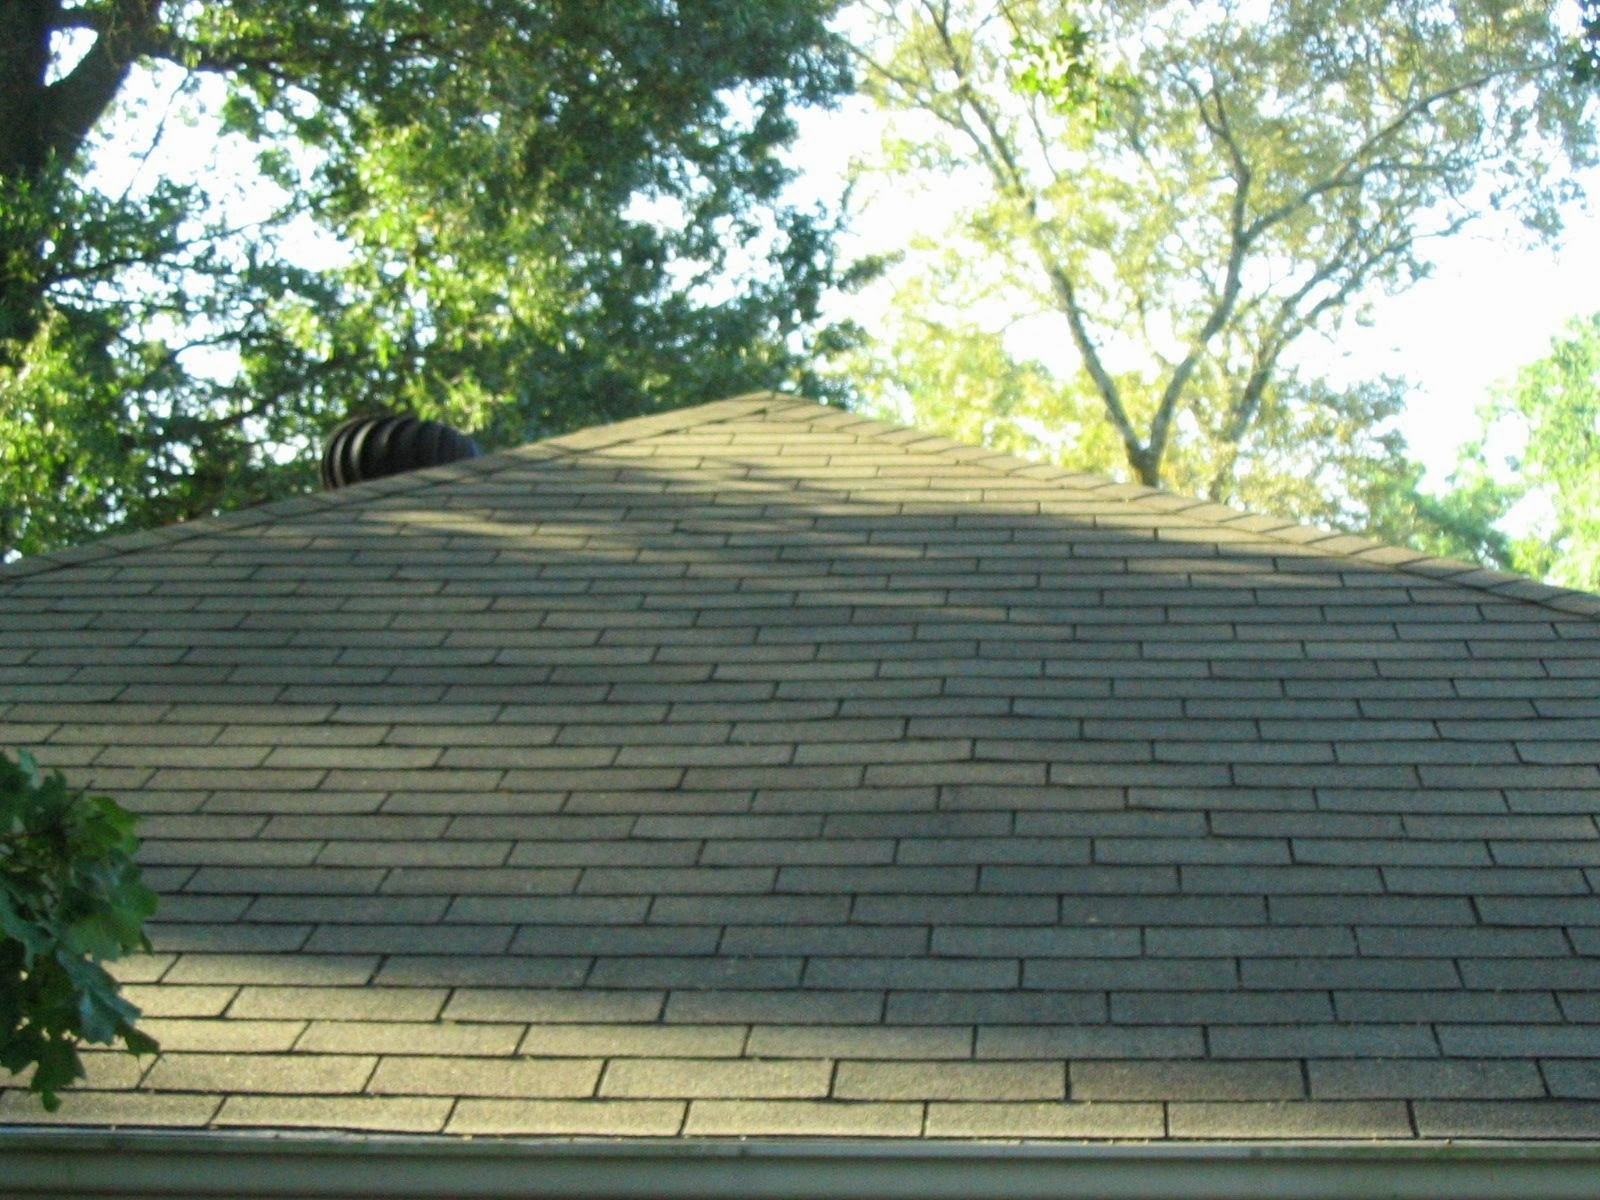 Roof a cide blog roof cleaning for communities 800 806 6727 top five reasons to get your - Reasons get roof cleaned ...